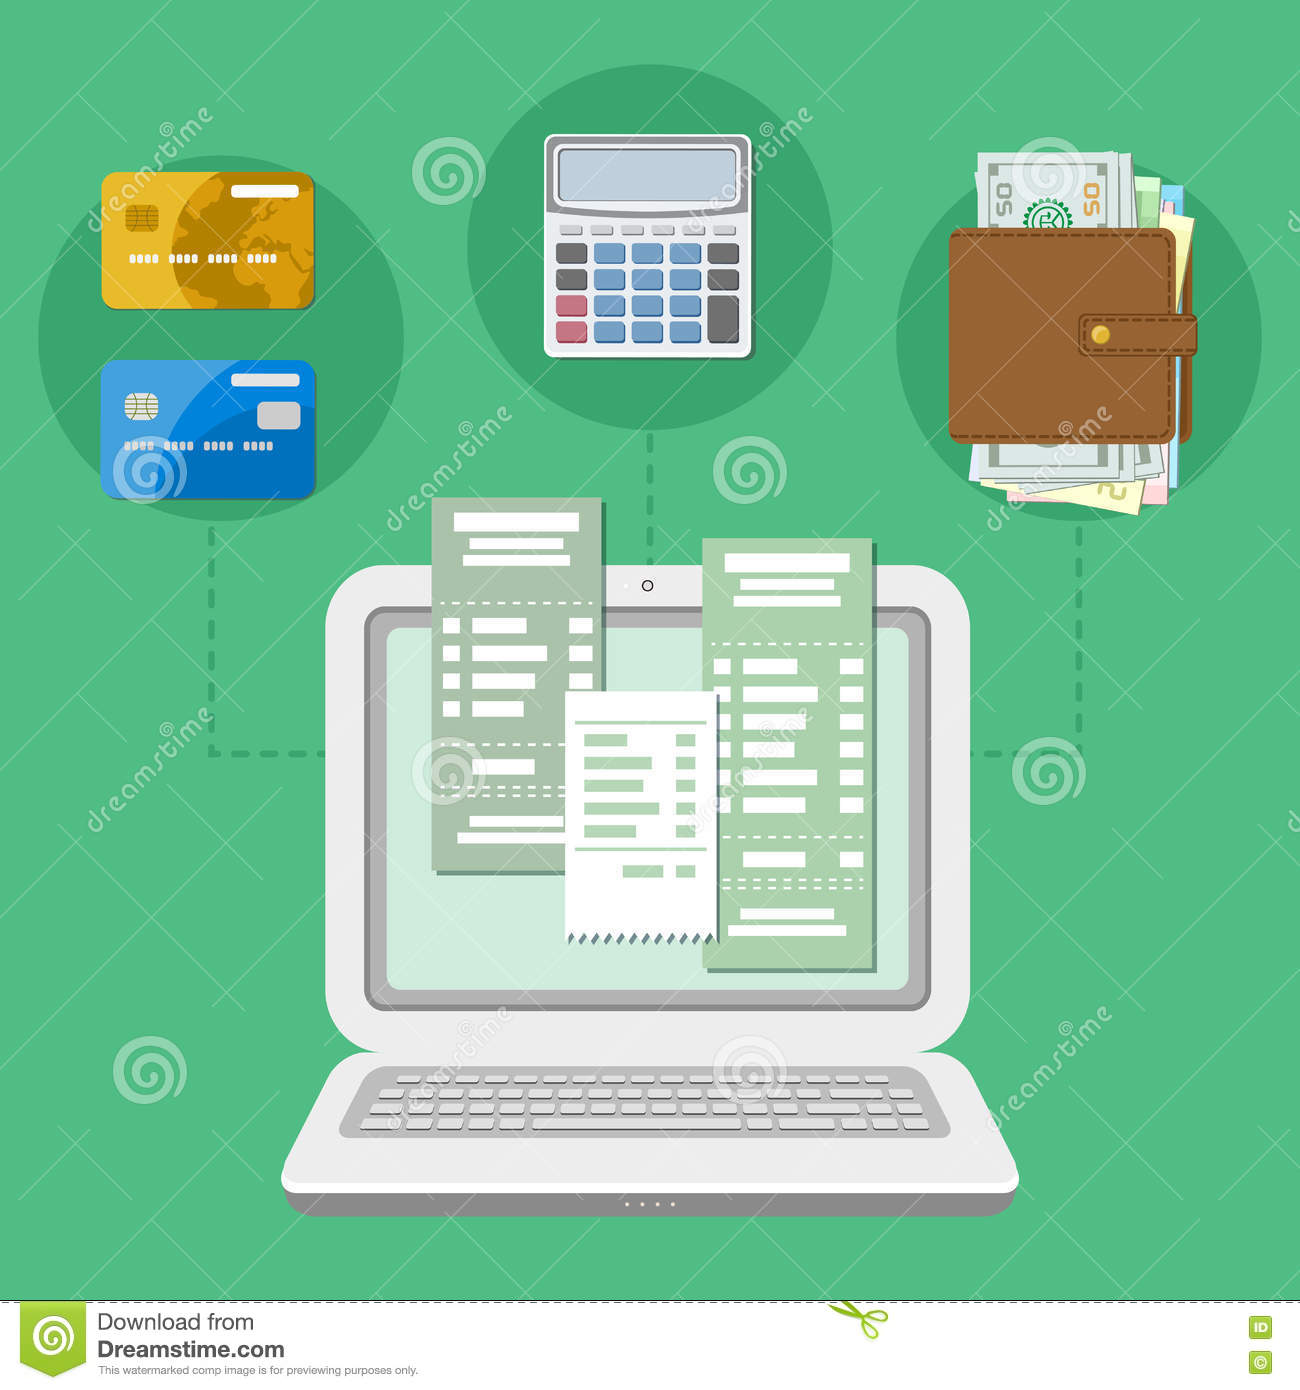 The Concept Of Payment Accounts Tax Bill Via A Computer Or A Laptop ...